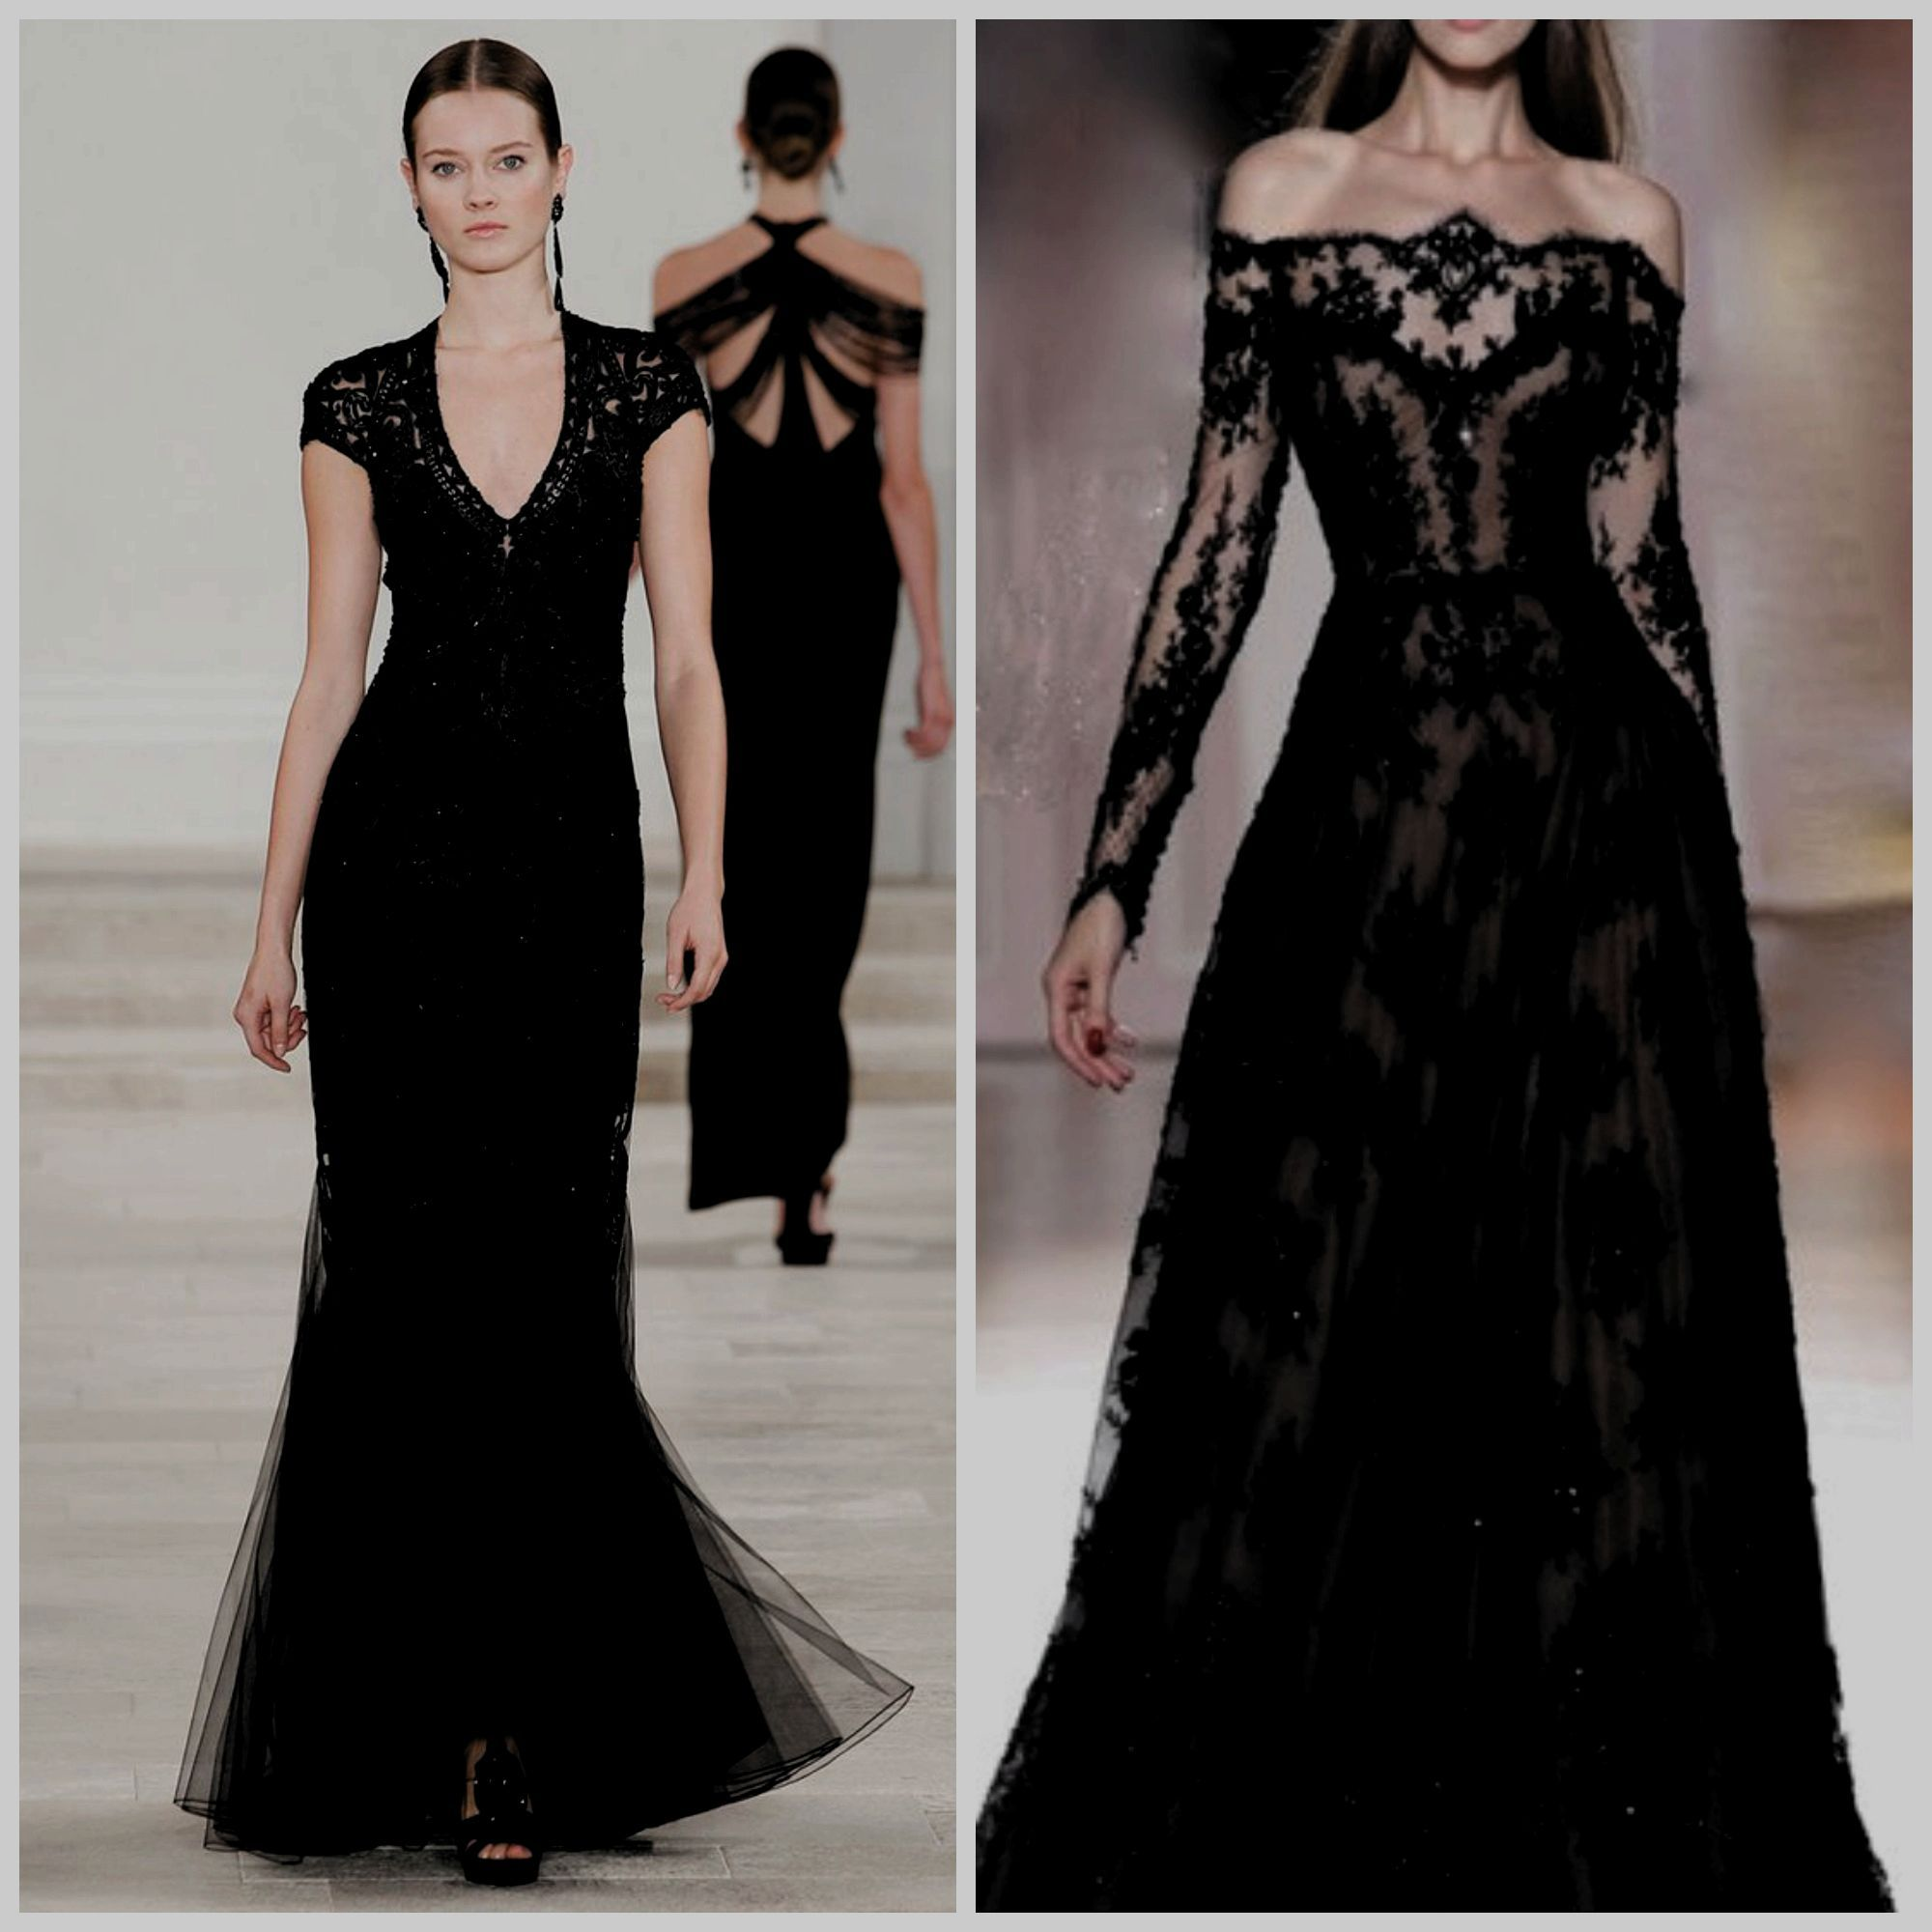 Black Tie event dress guide for women source: http://www ...